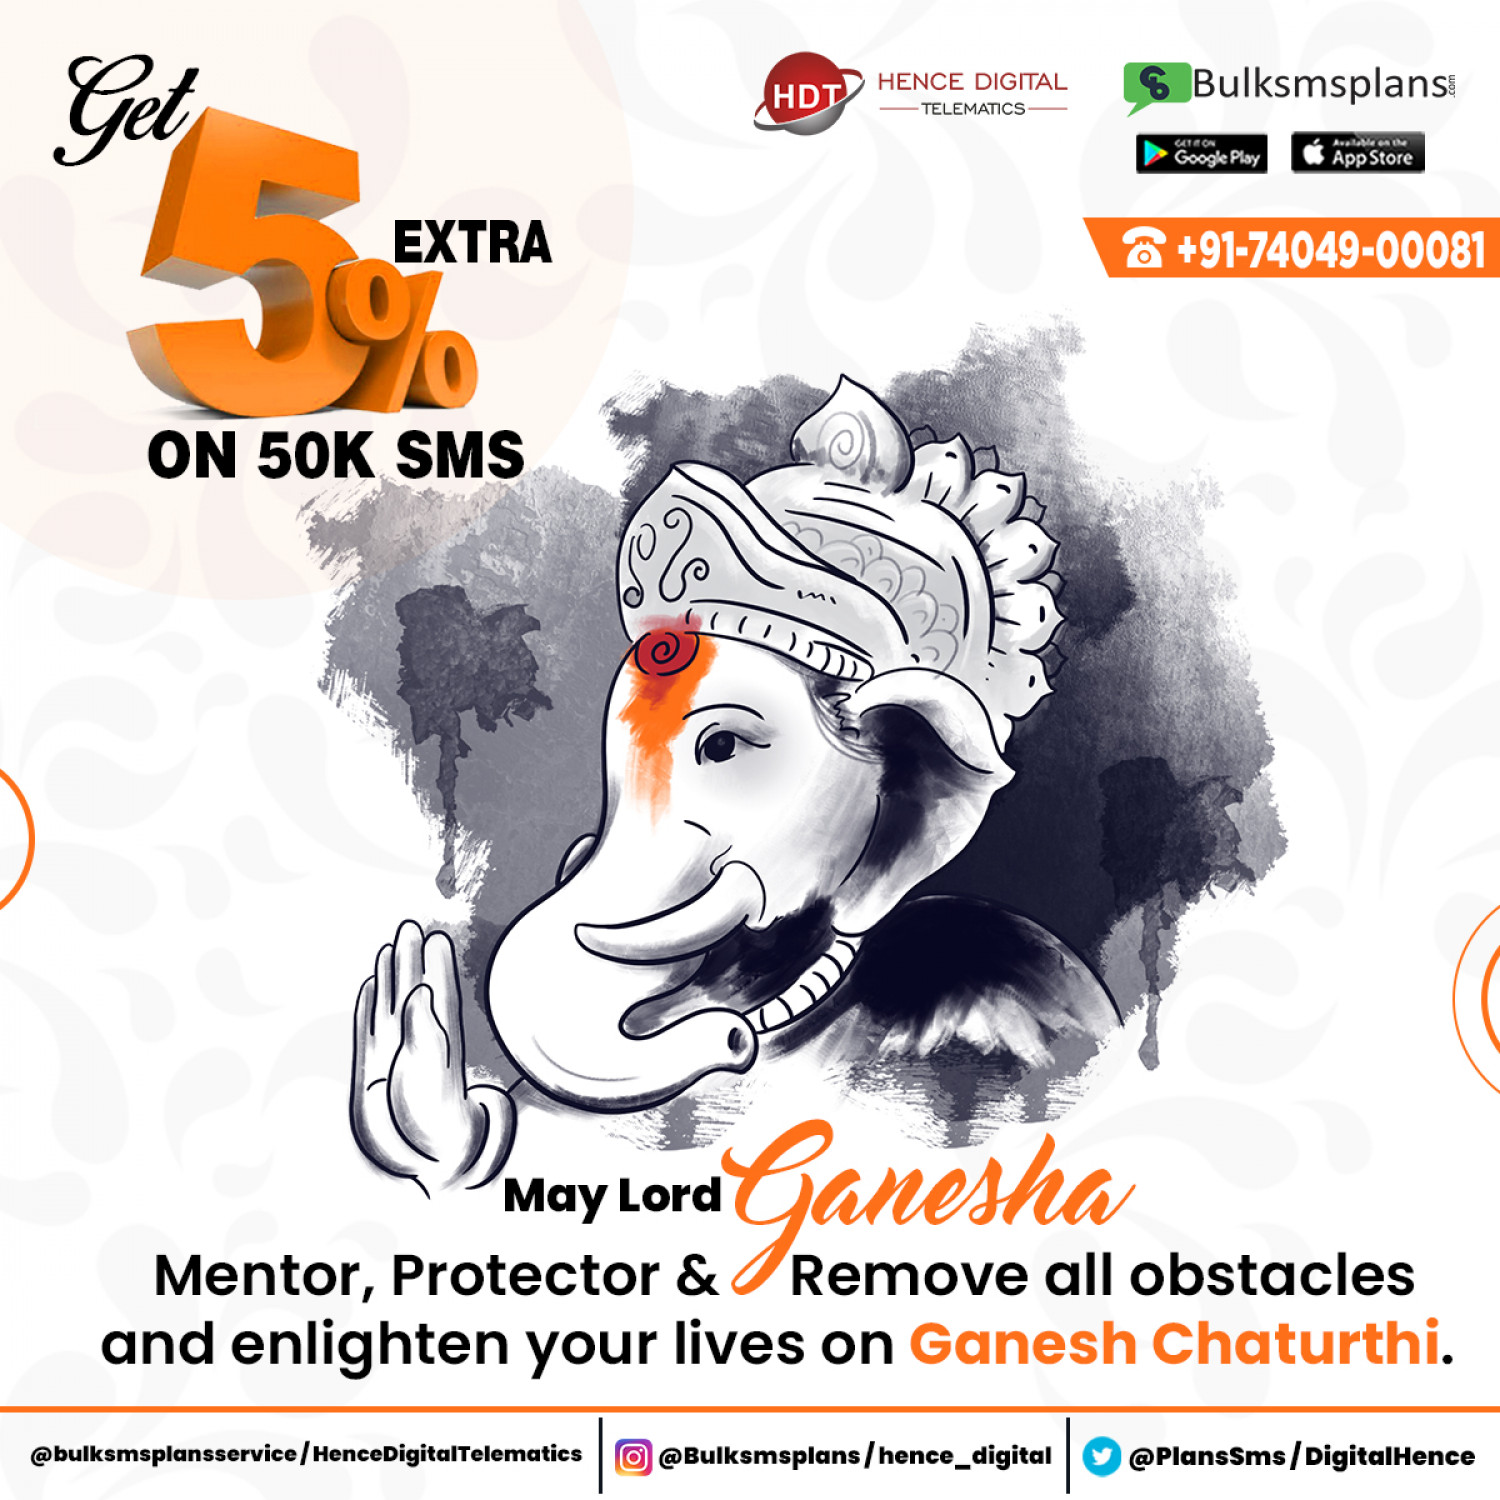 Lord Ganesha mentor, protector & remove all obstacles & enlighten your lives on Ganesh Chaturthi Infographic